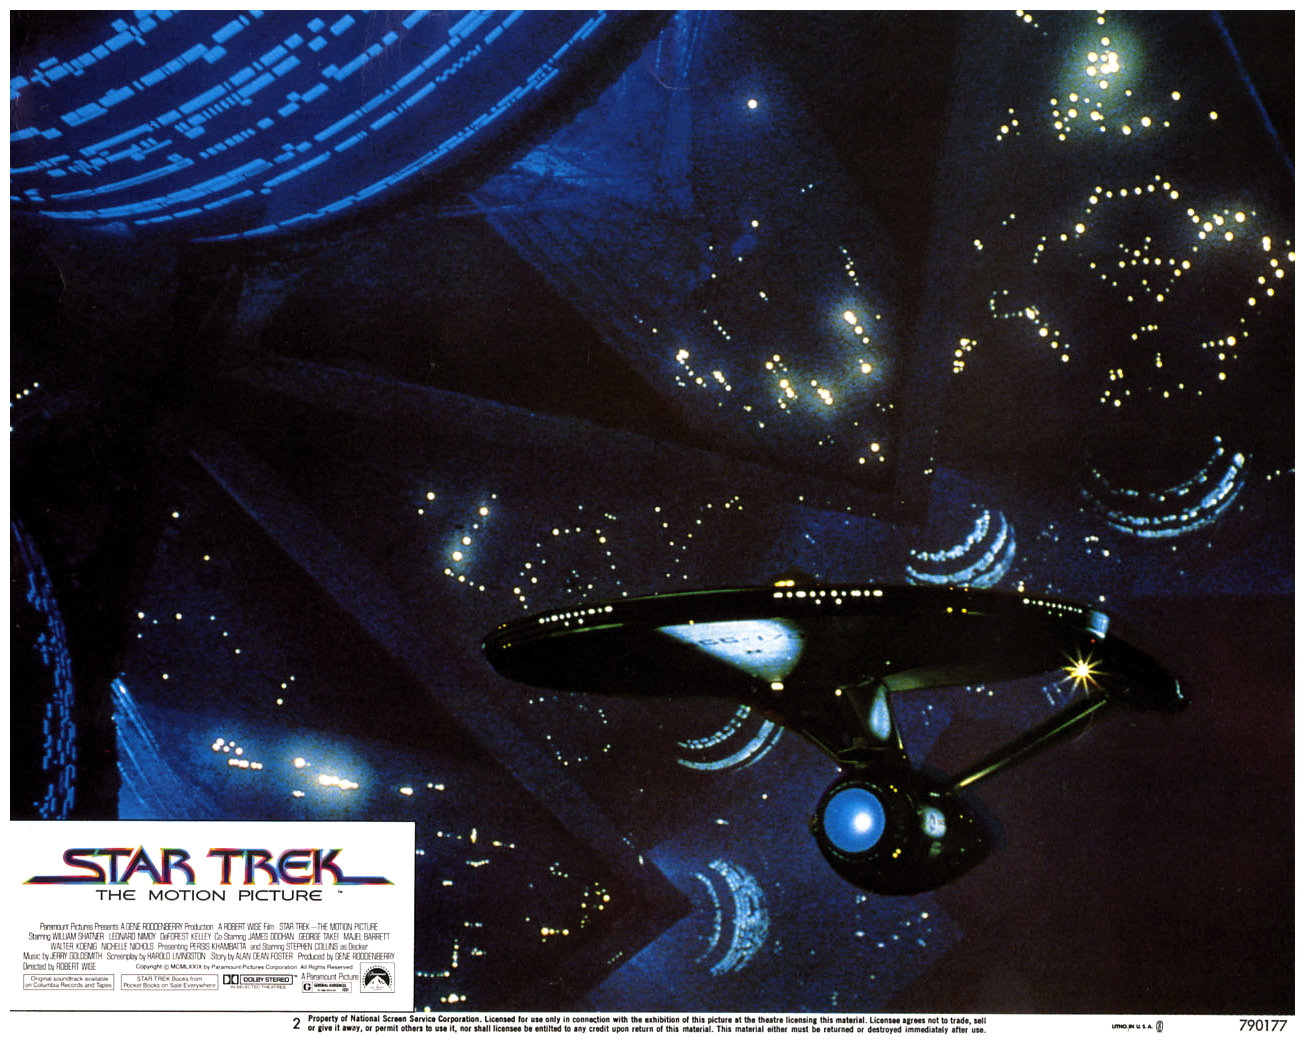 Film Review: Star Trek The Motion Picture (1979) | HNN